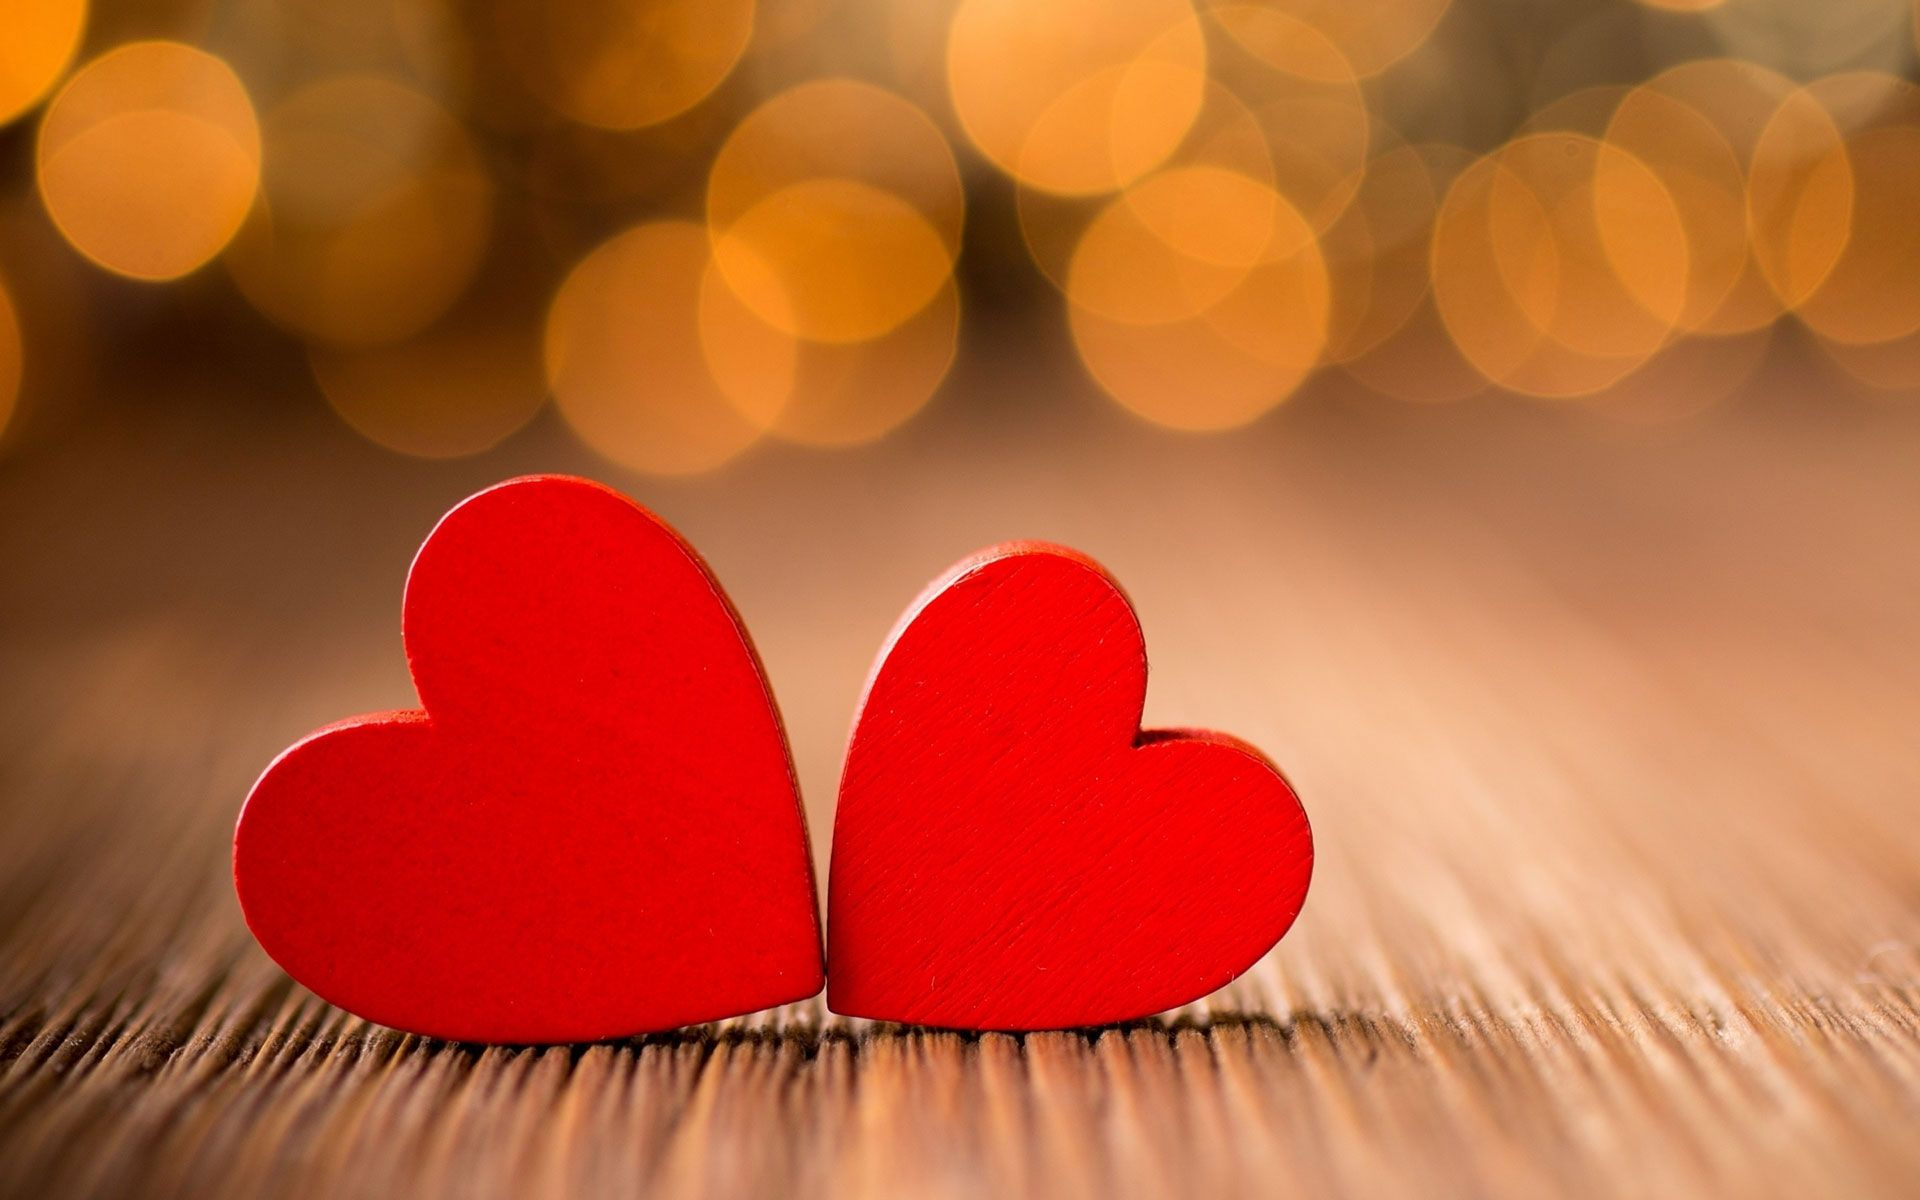 new cute images of love hearts - cute love heart wallpaper hd free